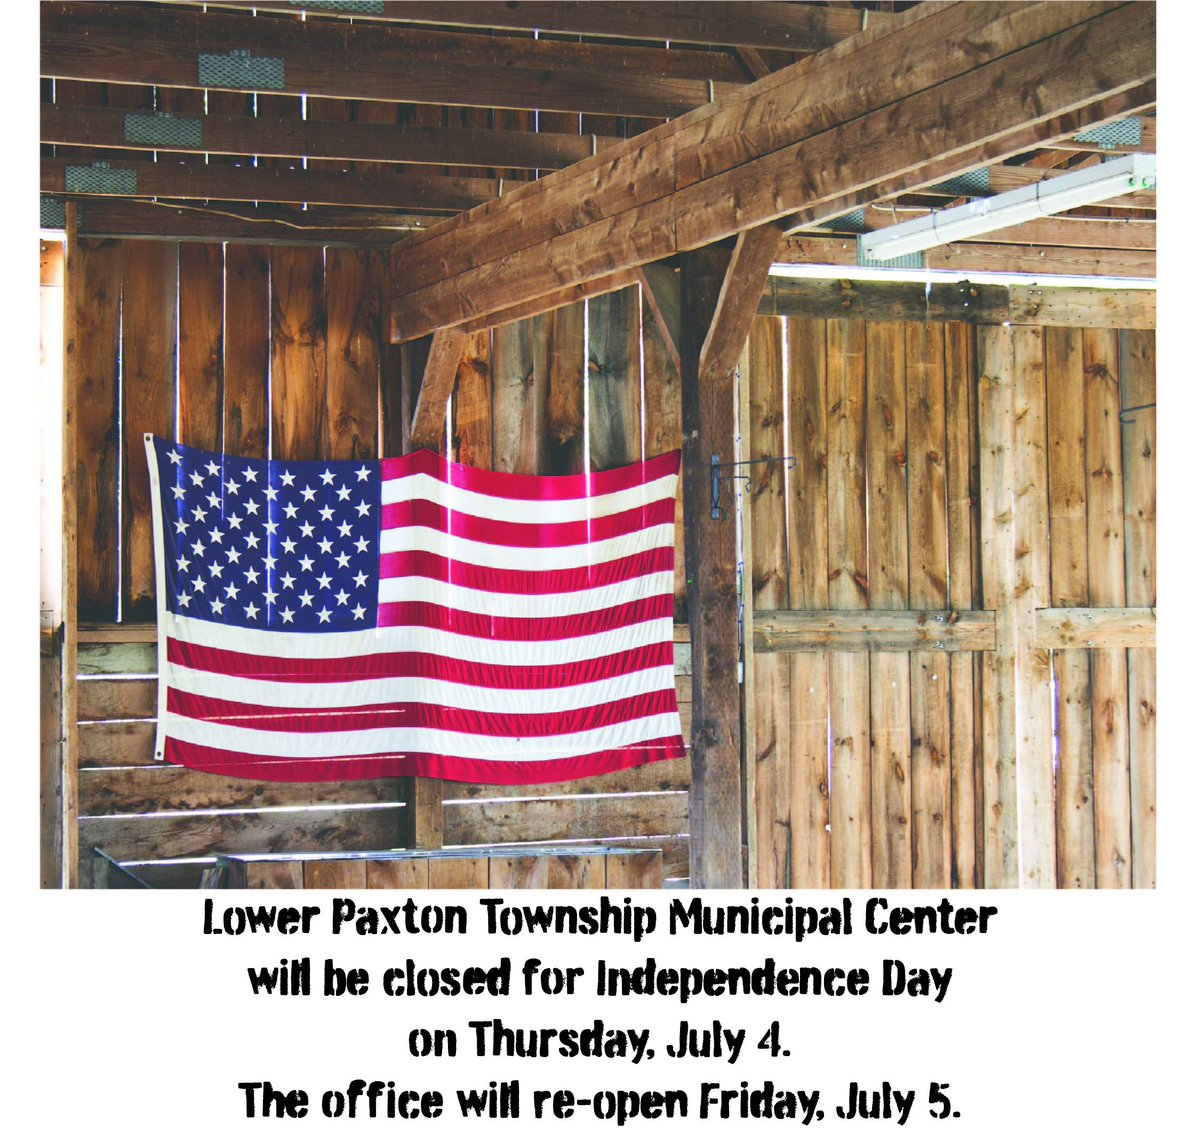 Enjoy Independence Day with family and friends. . . God Bless America! #lowerpaxtontwp #ourcountry #independenceday